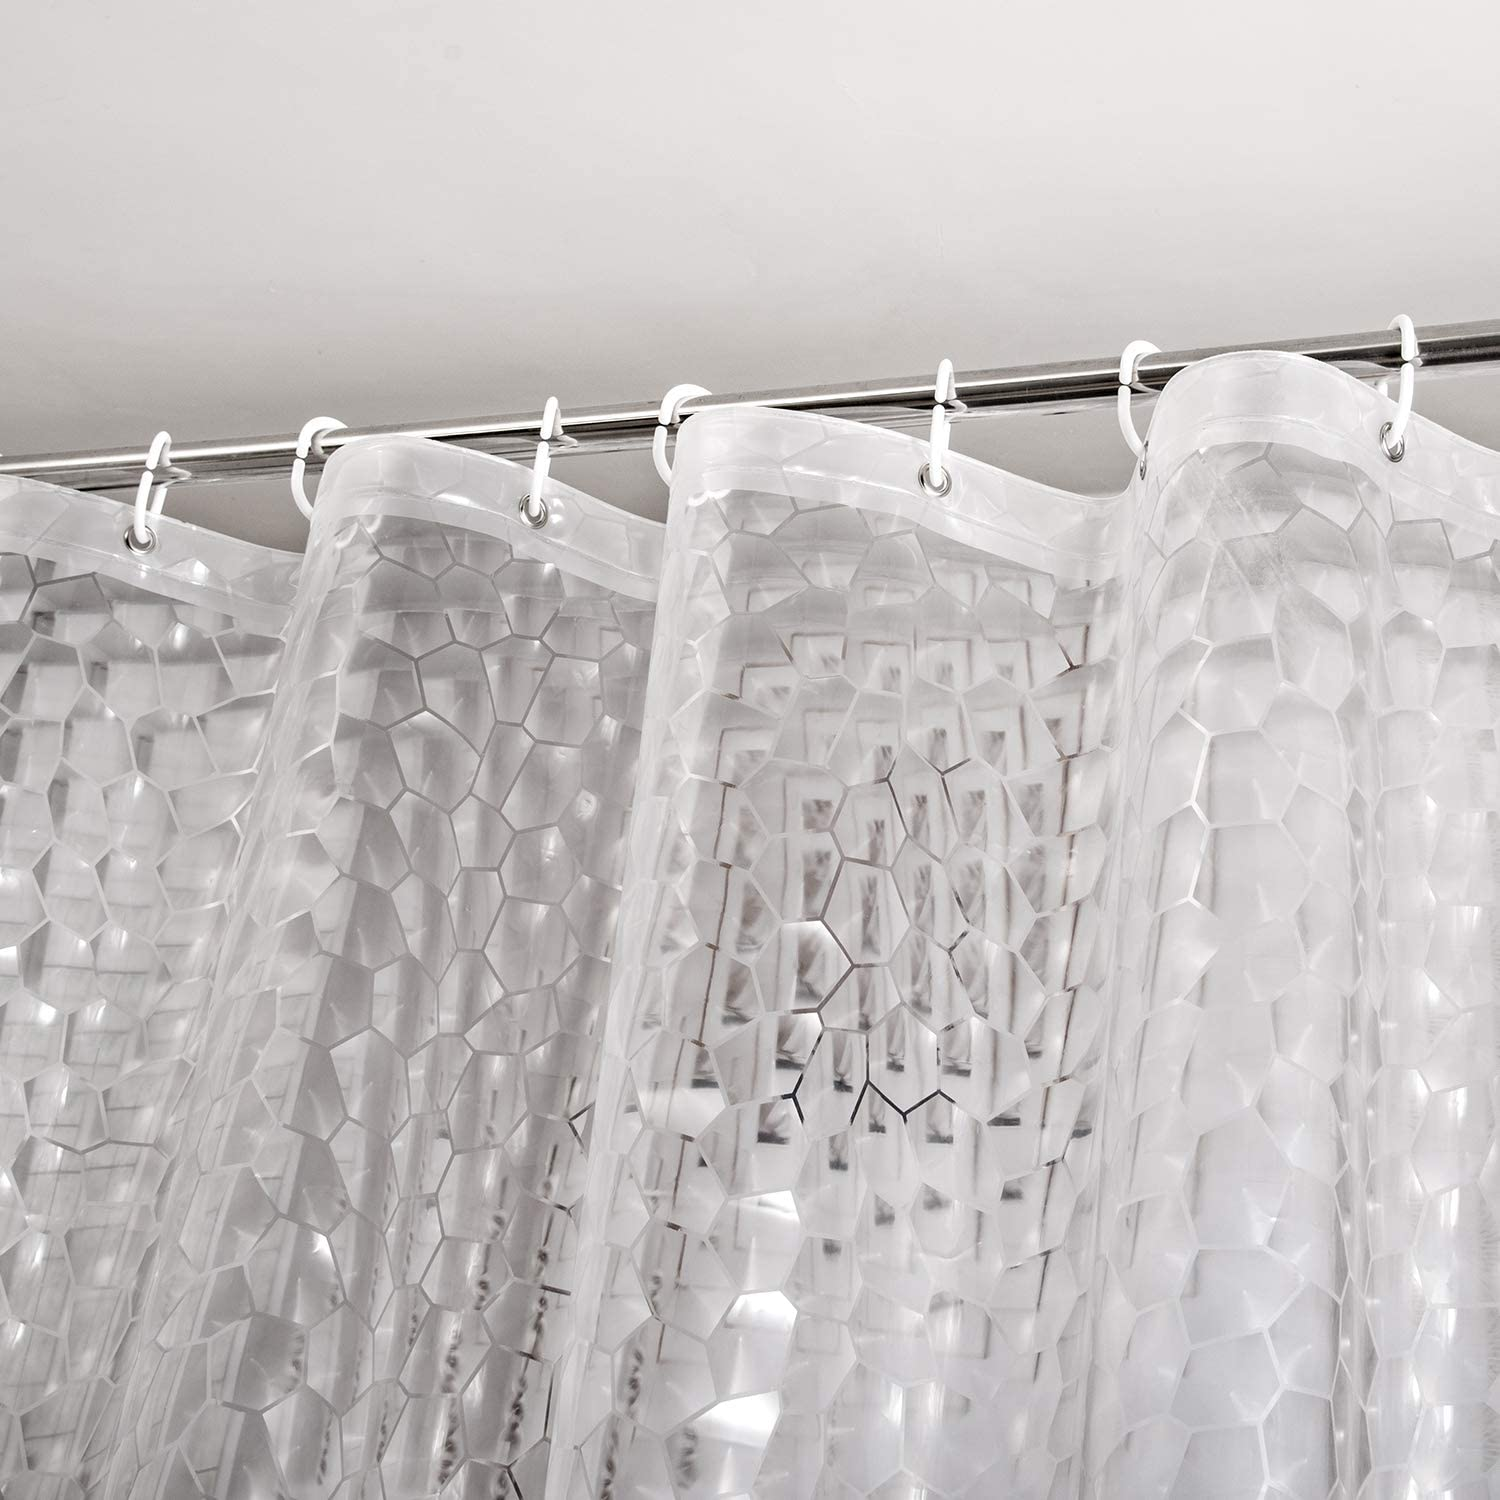 WELTRXE Heavy Duty EVA Shower Curtain Liner with Magnets Waterproof 3D Water Cube Clear Bathroom Shower Curtains, No Chemical Smell, No Odors, 72 x 72 in, 12 Hooks